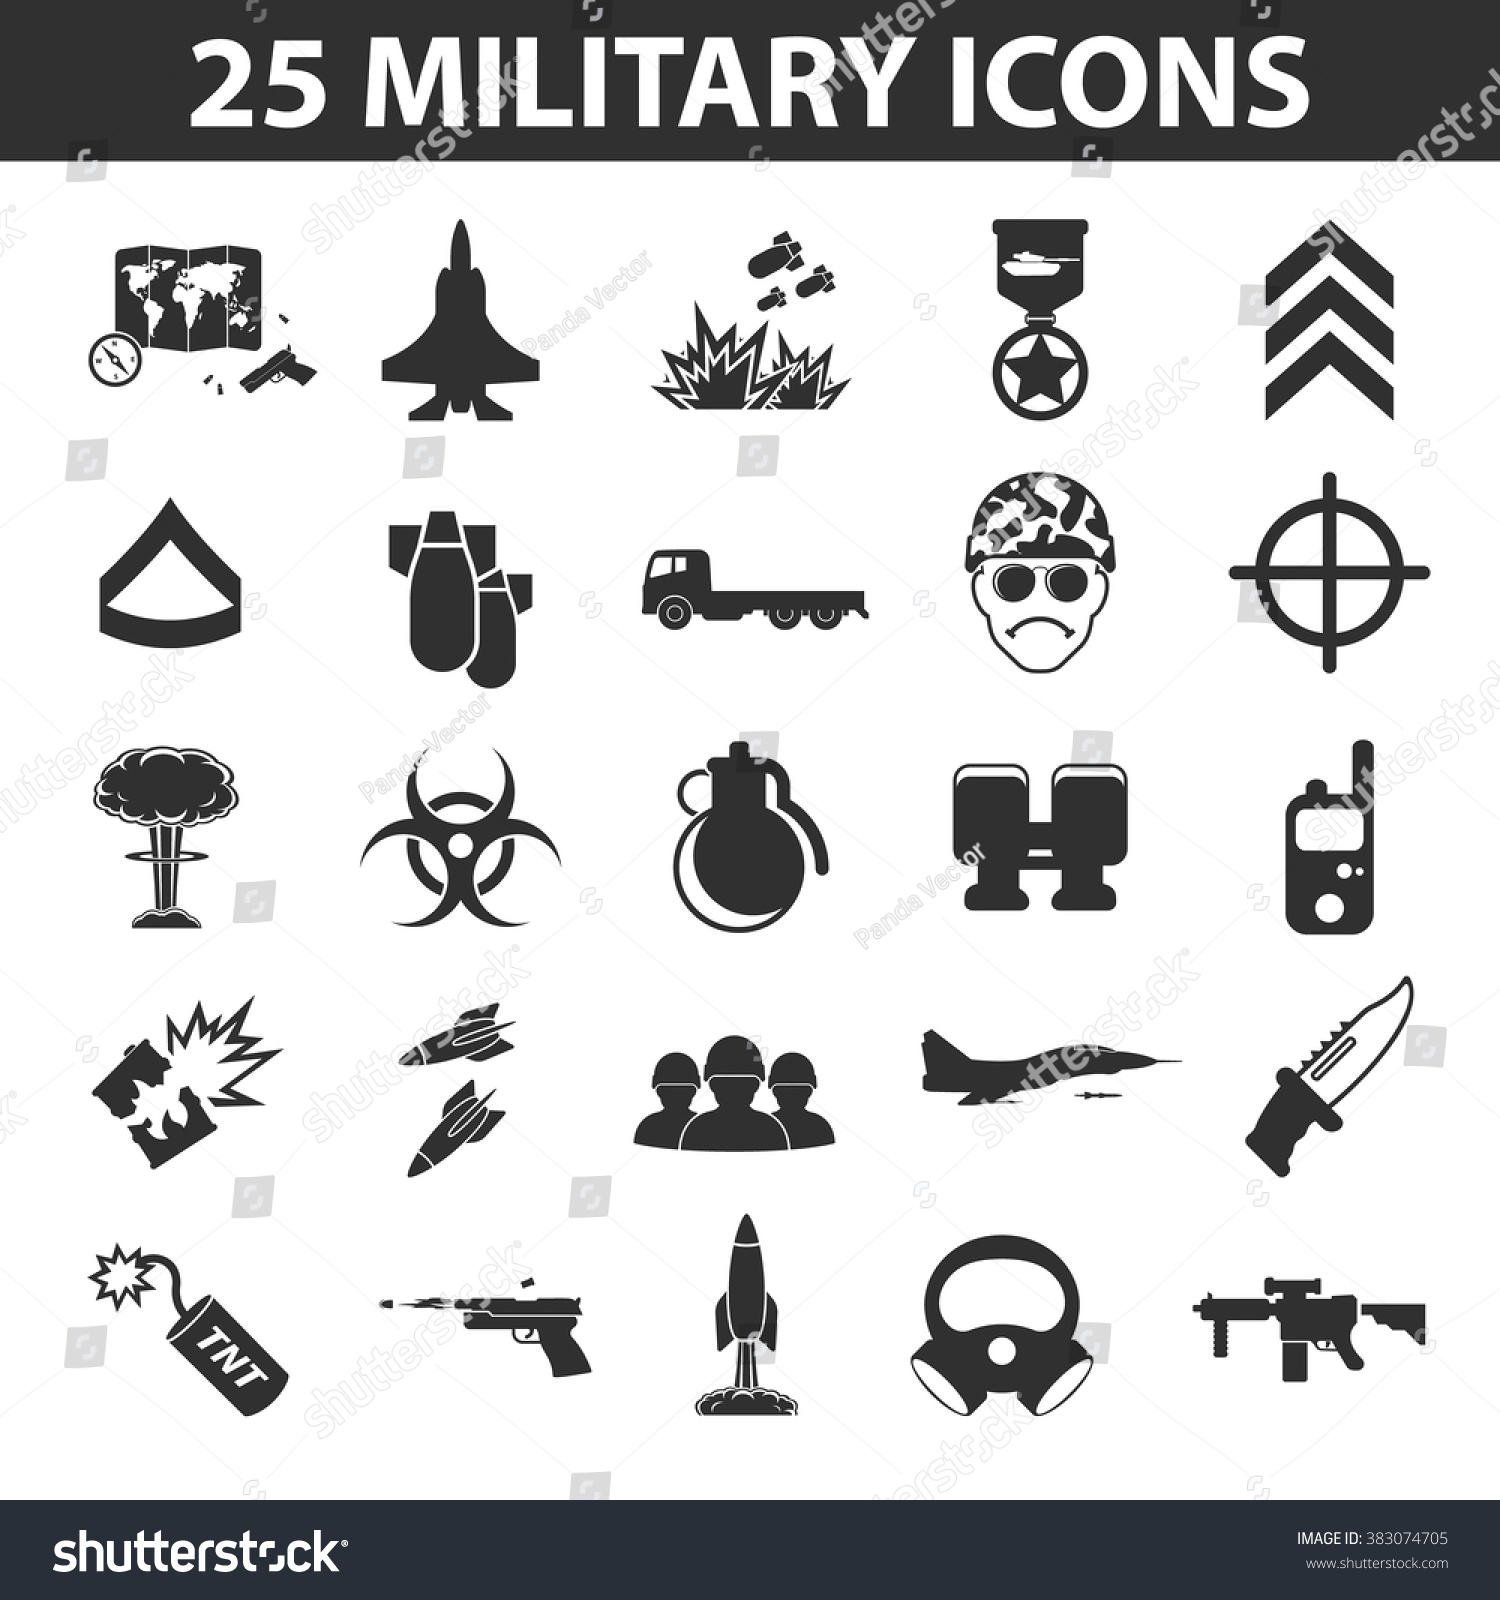 Engineer Equip Military Icons And Symbols Symbols Free Download